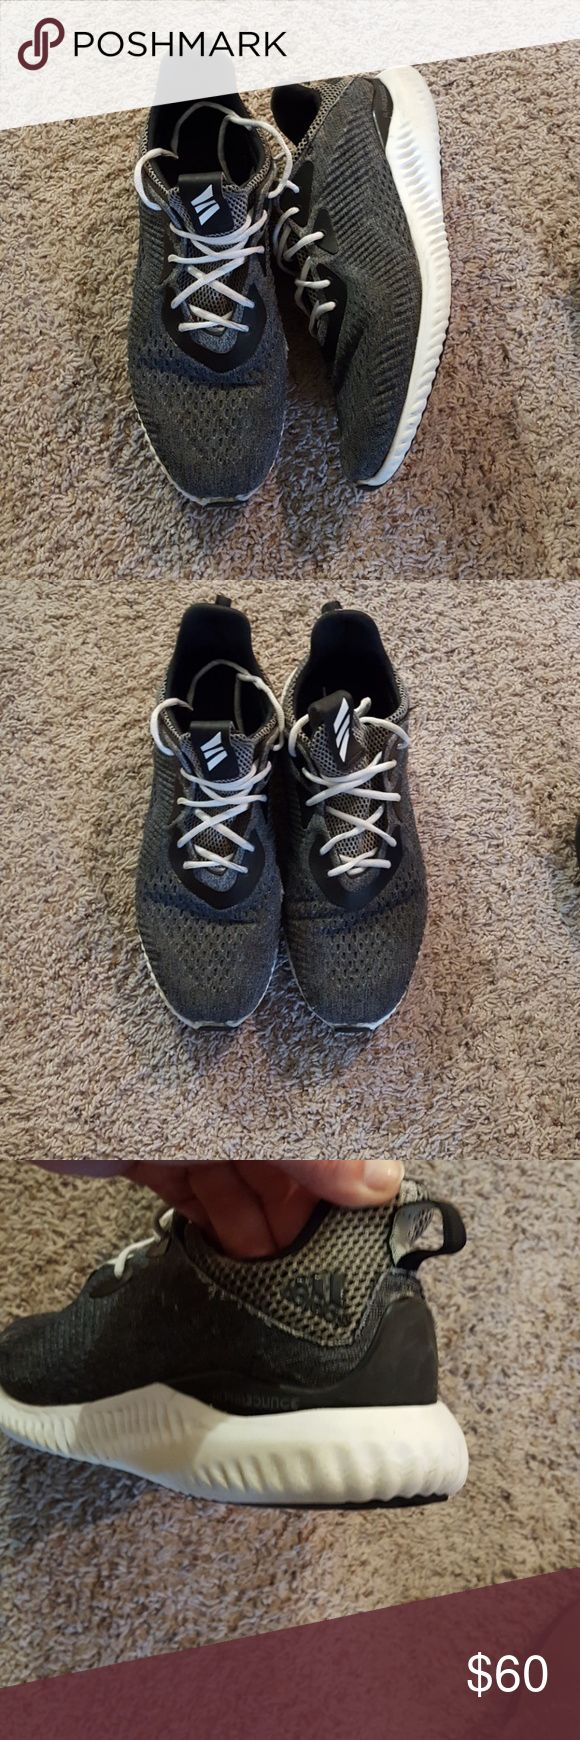 Men's Adidas Men's Alphabounce Adidas Shoes size 14. Charcoal gray. Worn but plenty of life left. One small snag, see last pic. adidas Shoes Athletic Shoes